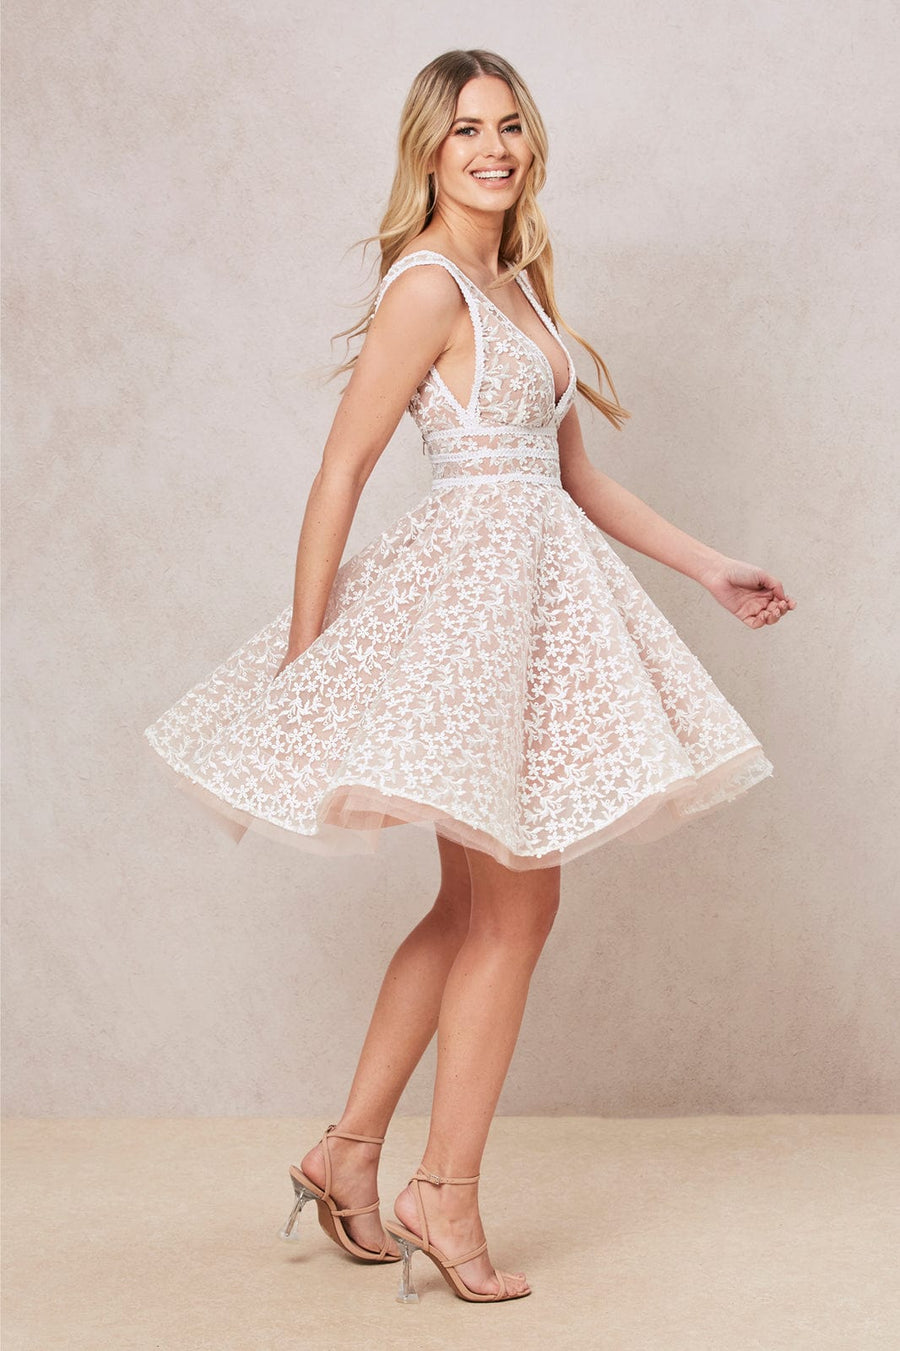 Daisy White Dress